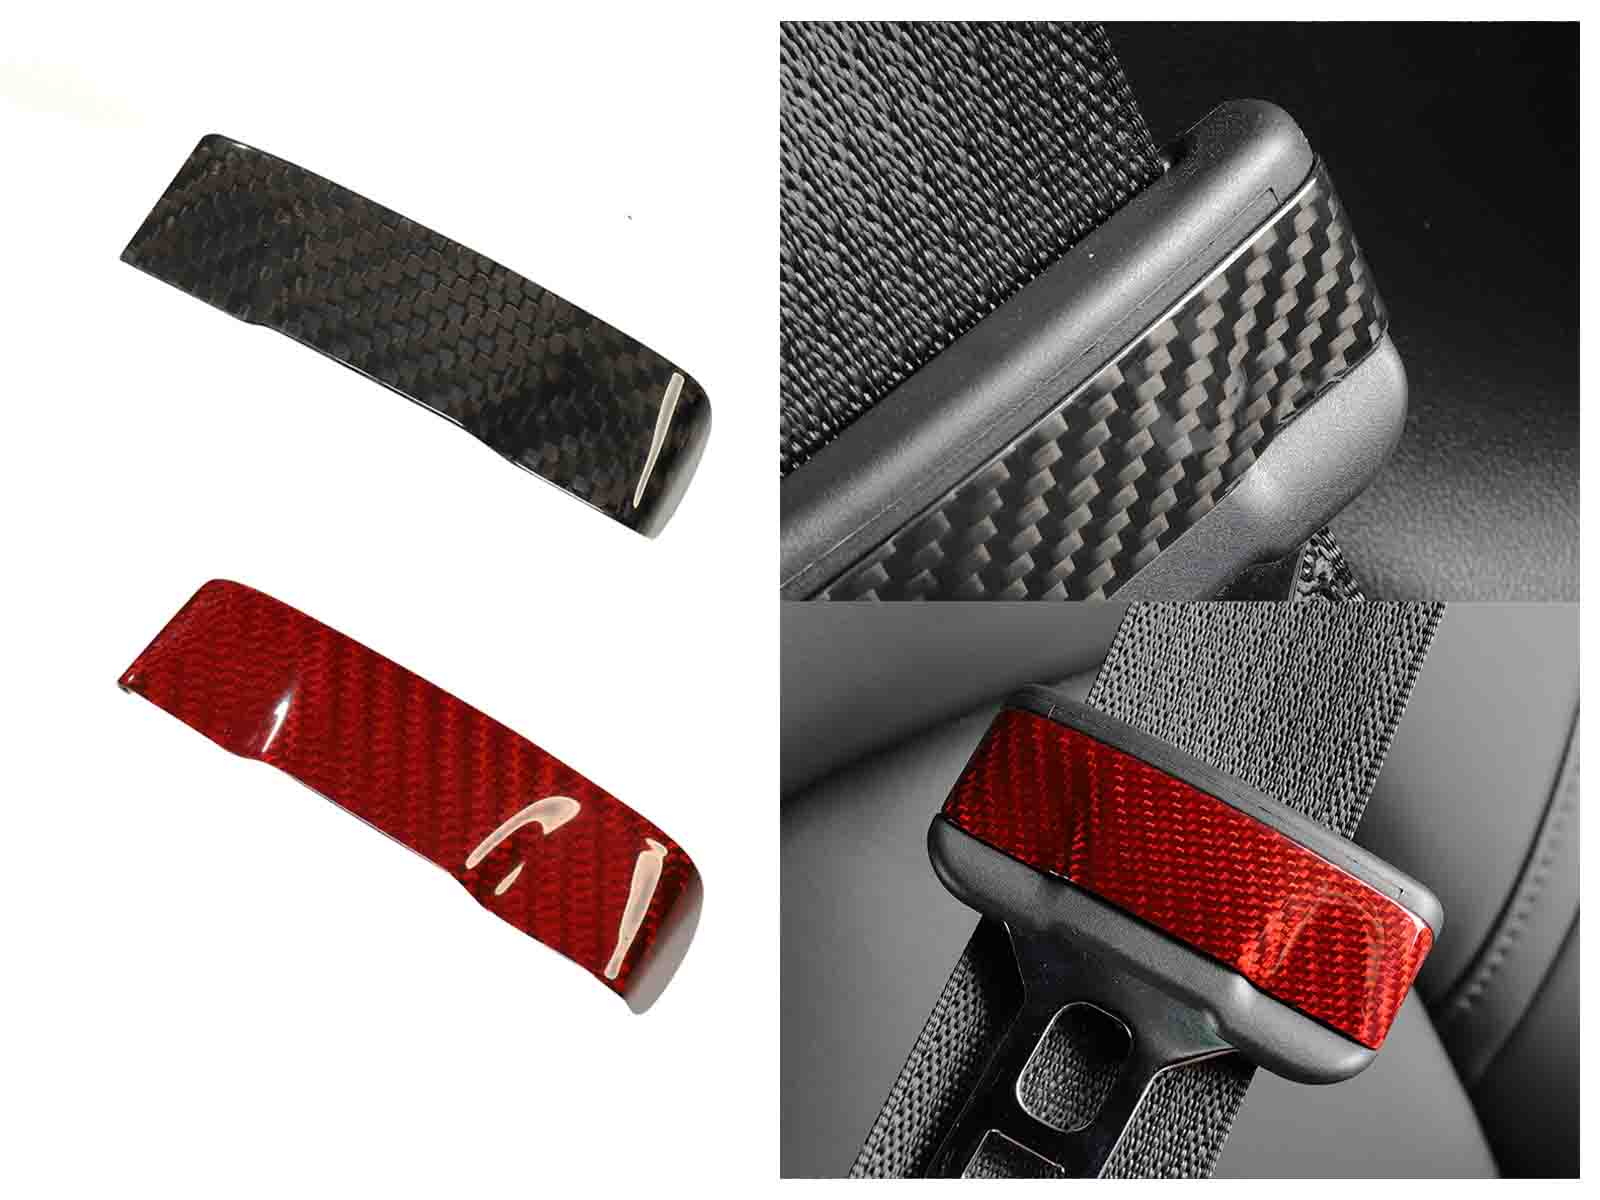 Model 3&Y: Seat belt decorative patch (Carbon fiber) - Torque Alliance